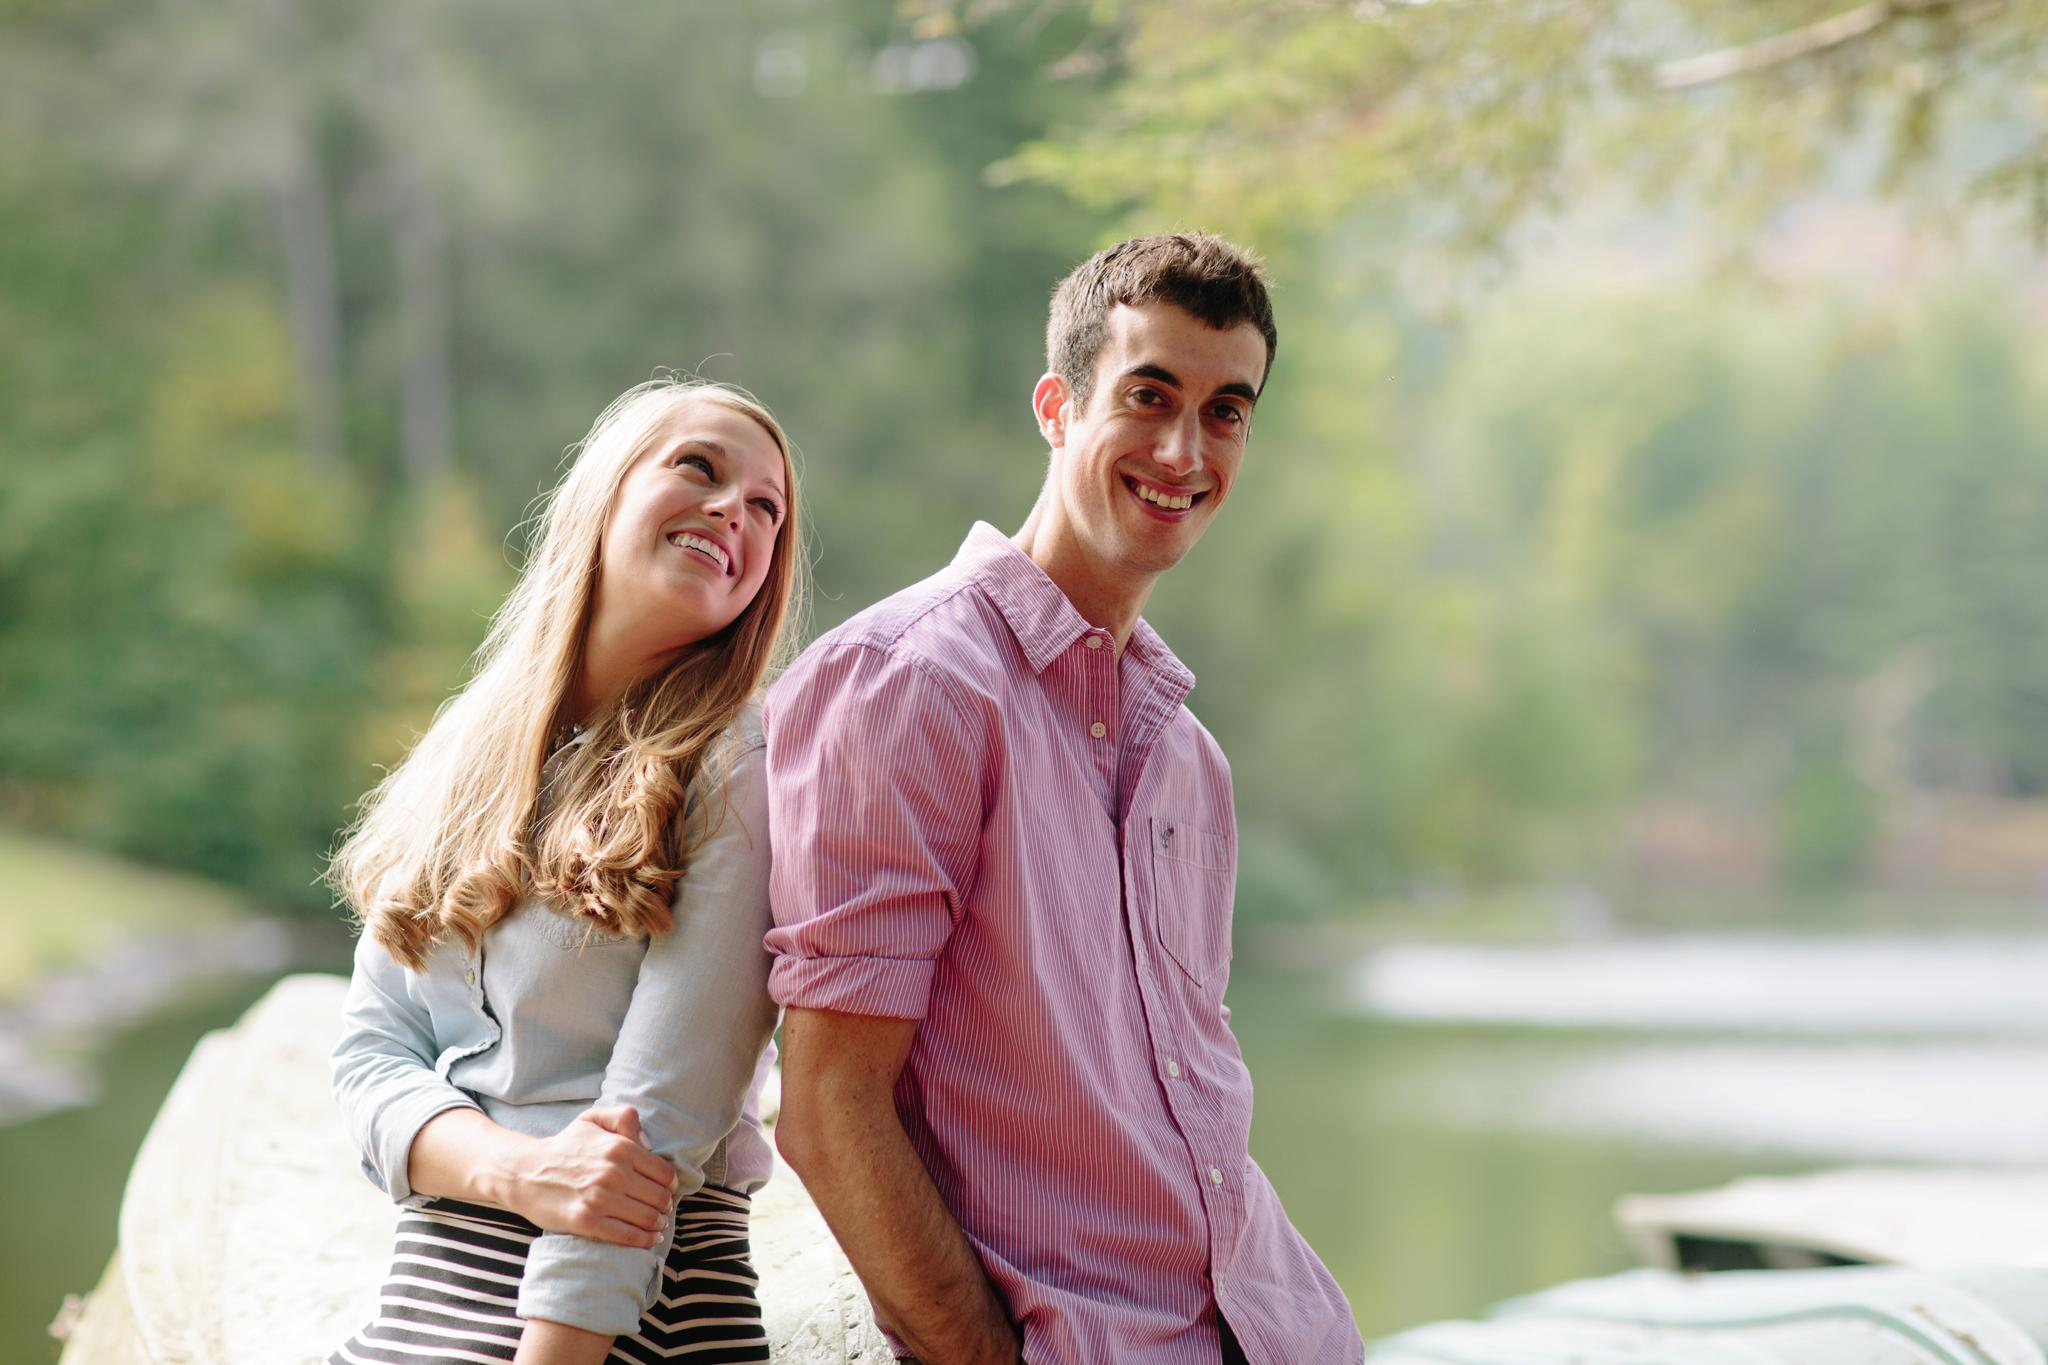 saddle_lake_engagement_session-32.jpg